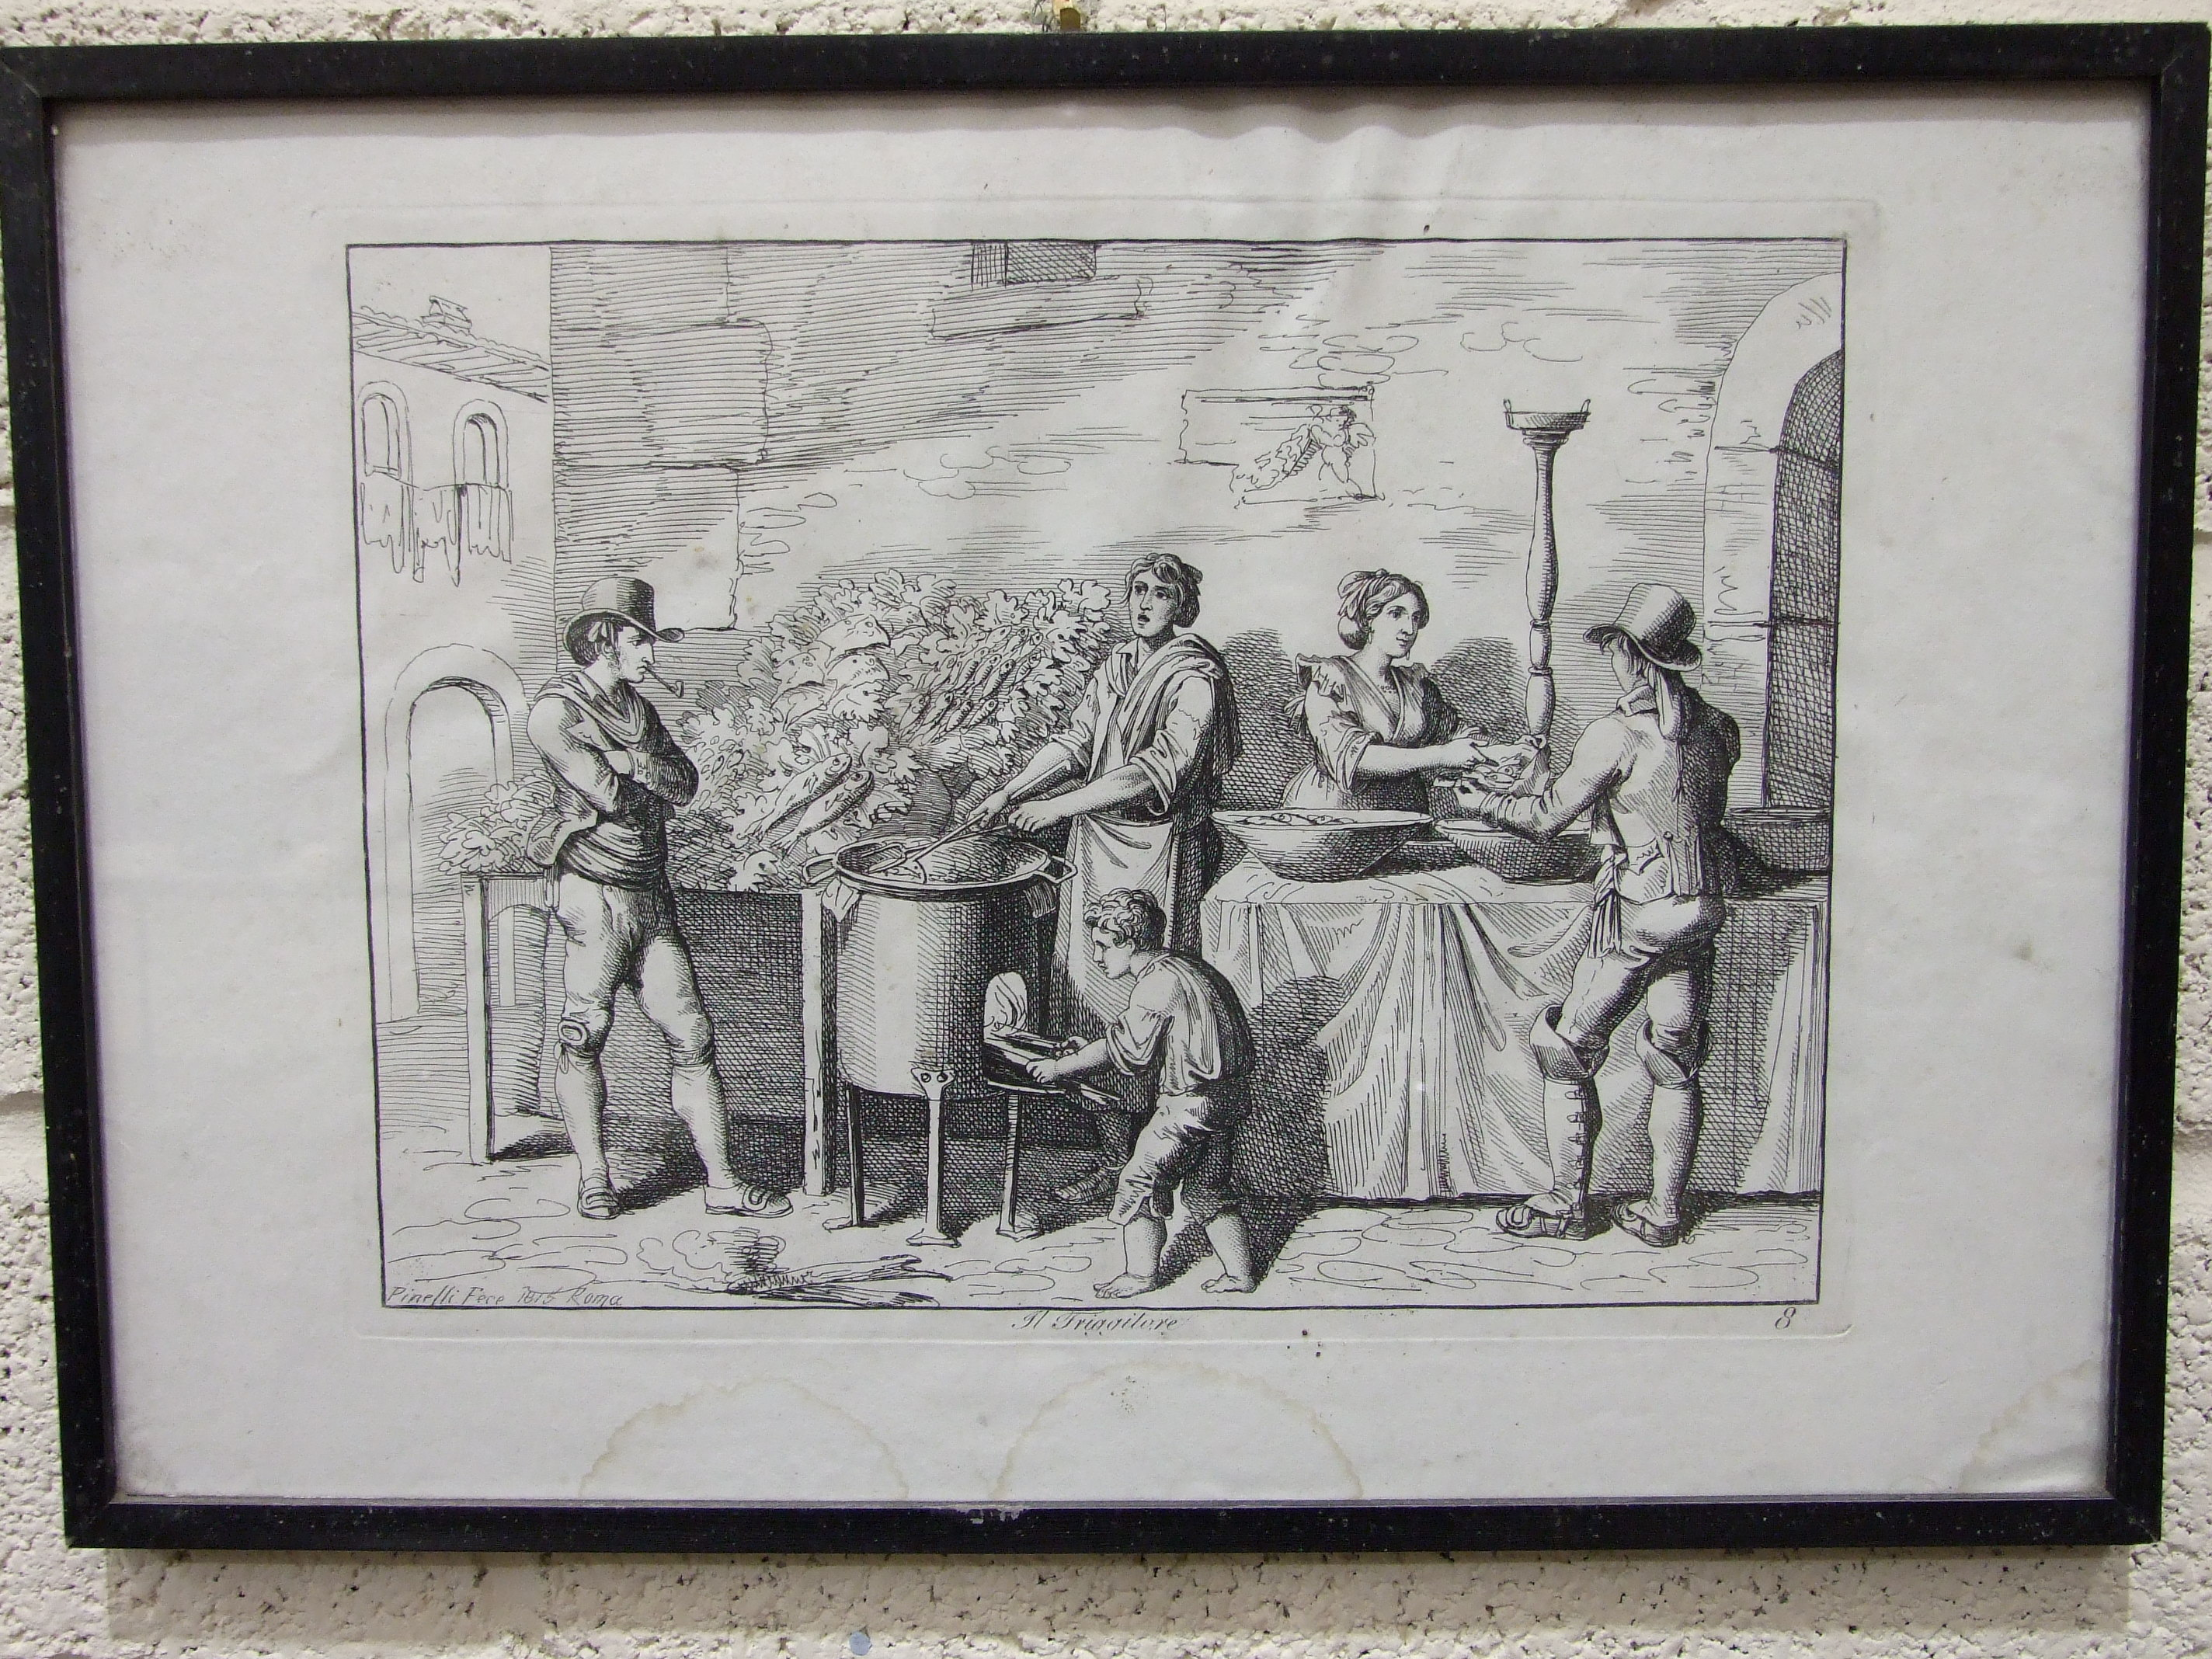 Lot 47 - After Bartolomeo Pinelli (1781-1835), a collection of twenty engravings from 'Nuova Raccolta Di